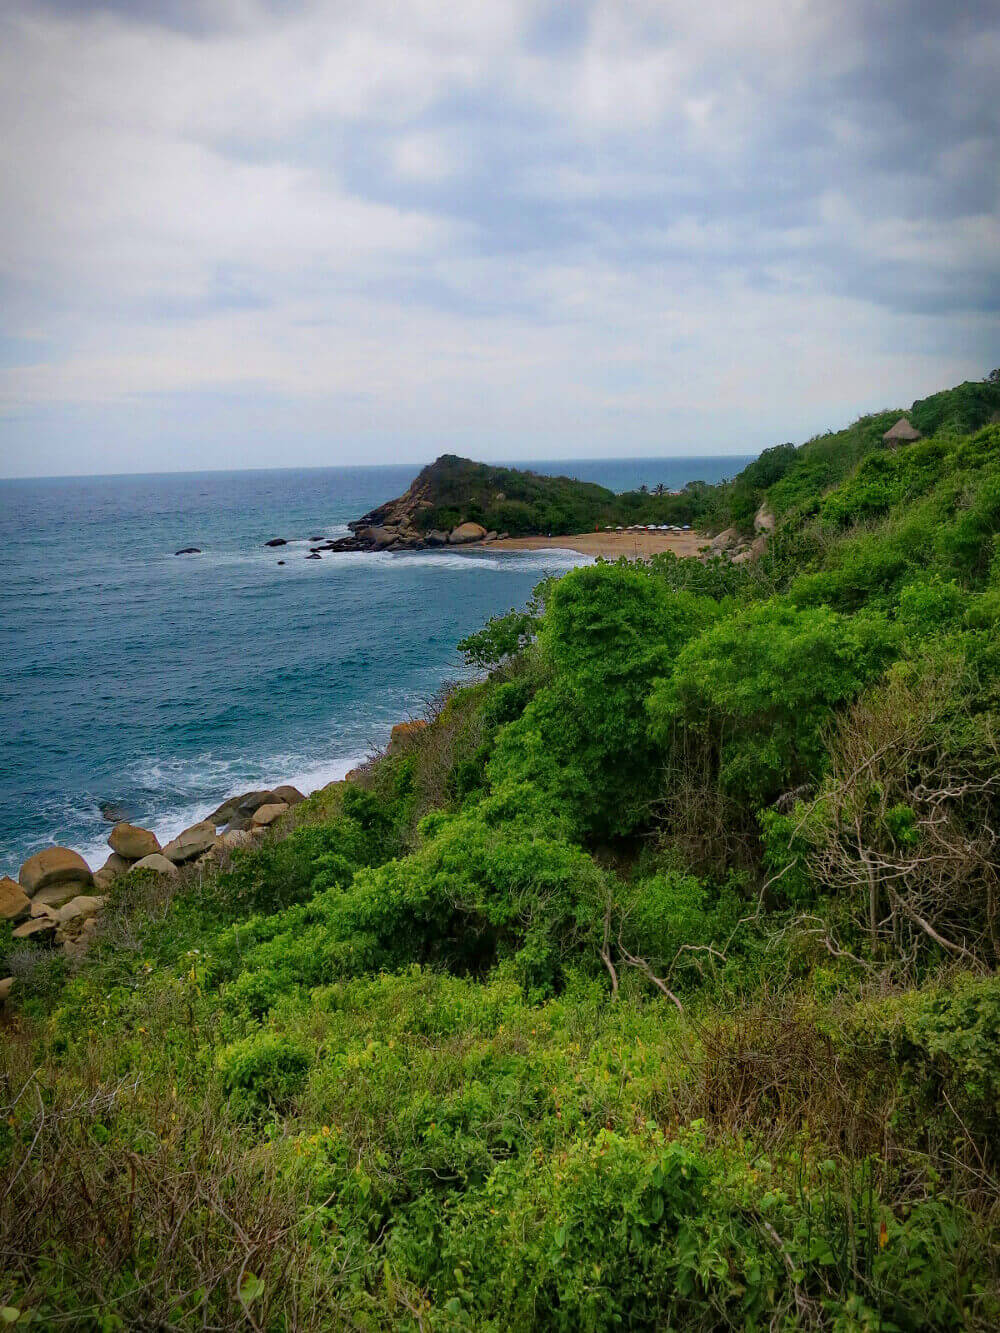 Parque Tayrona, Colombia: gorgeous, but not easy to get to.